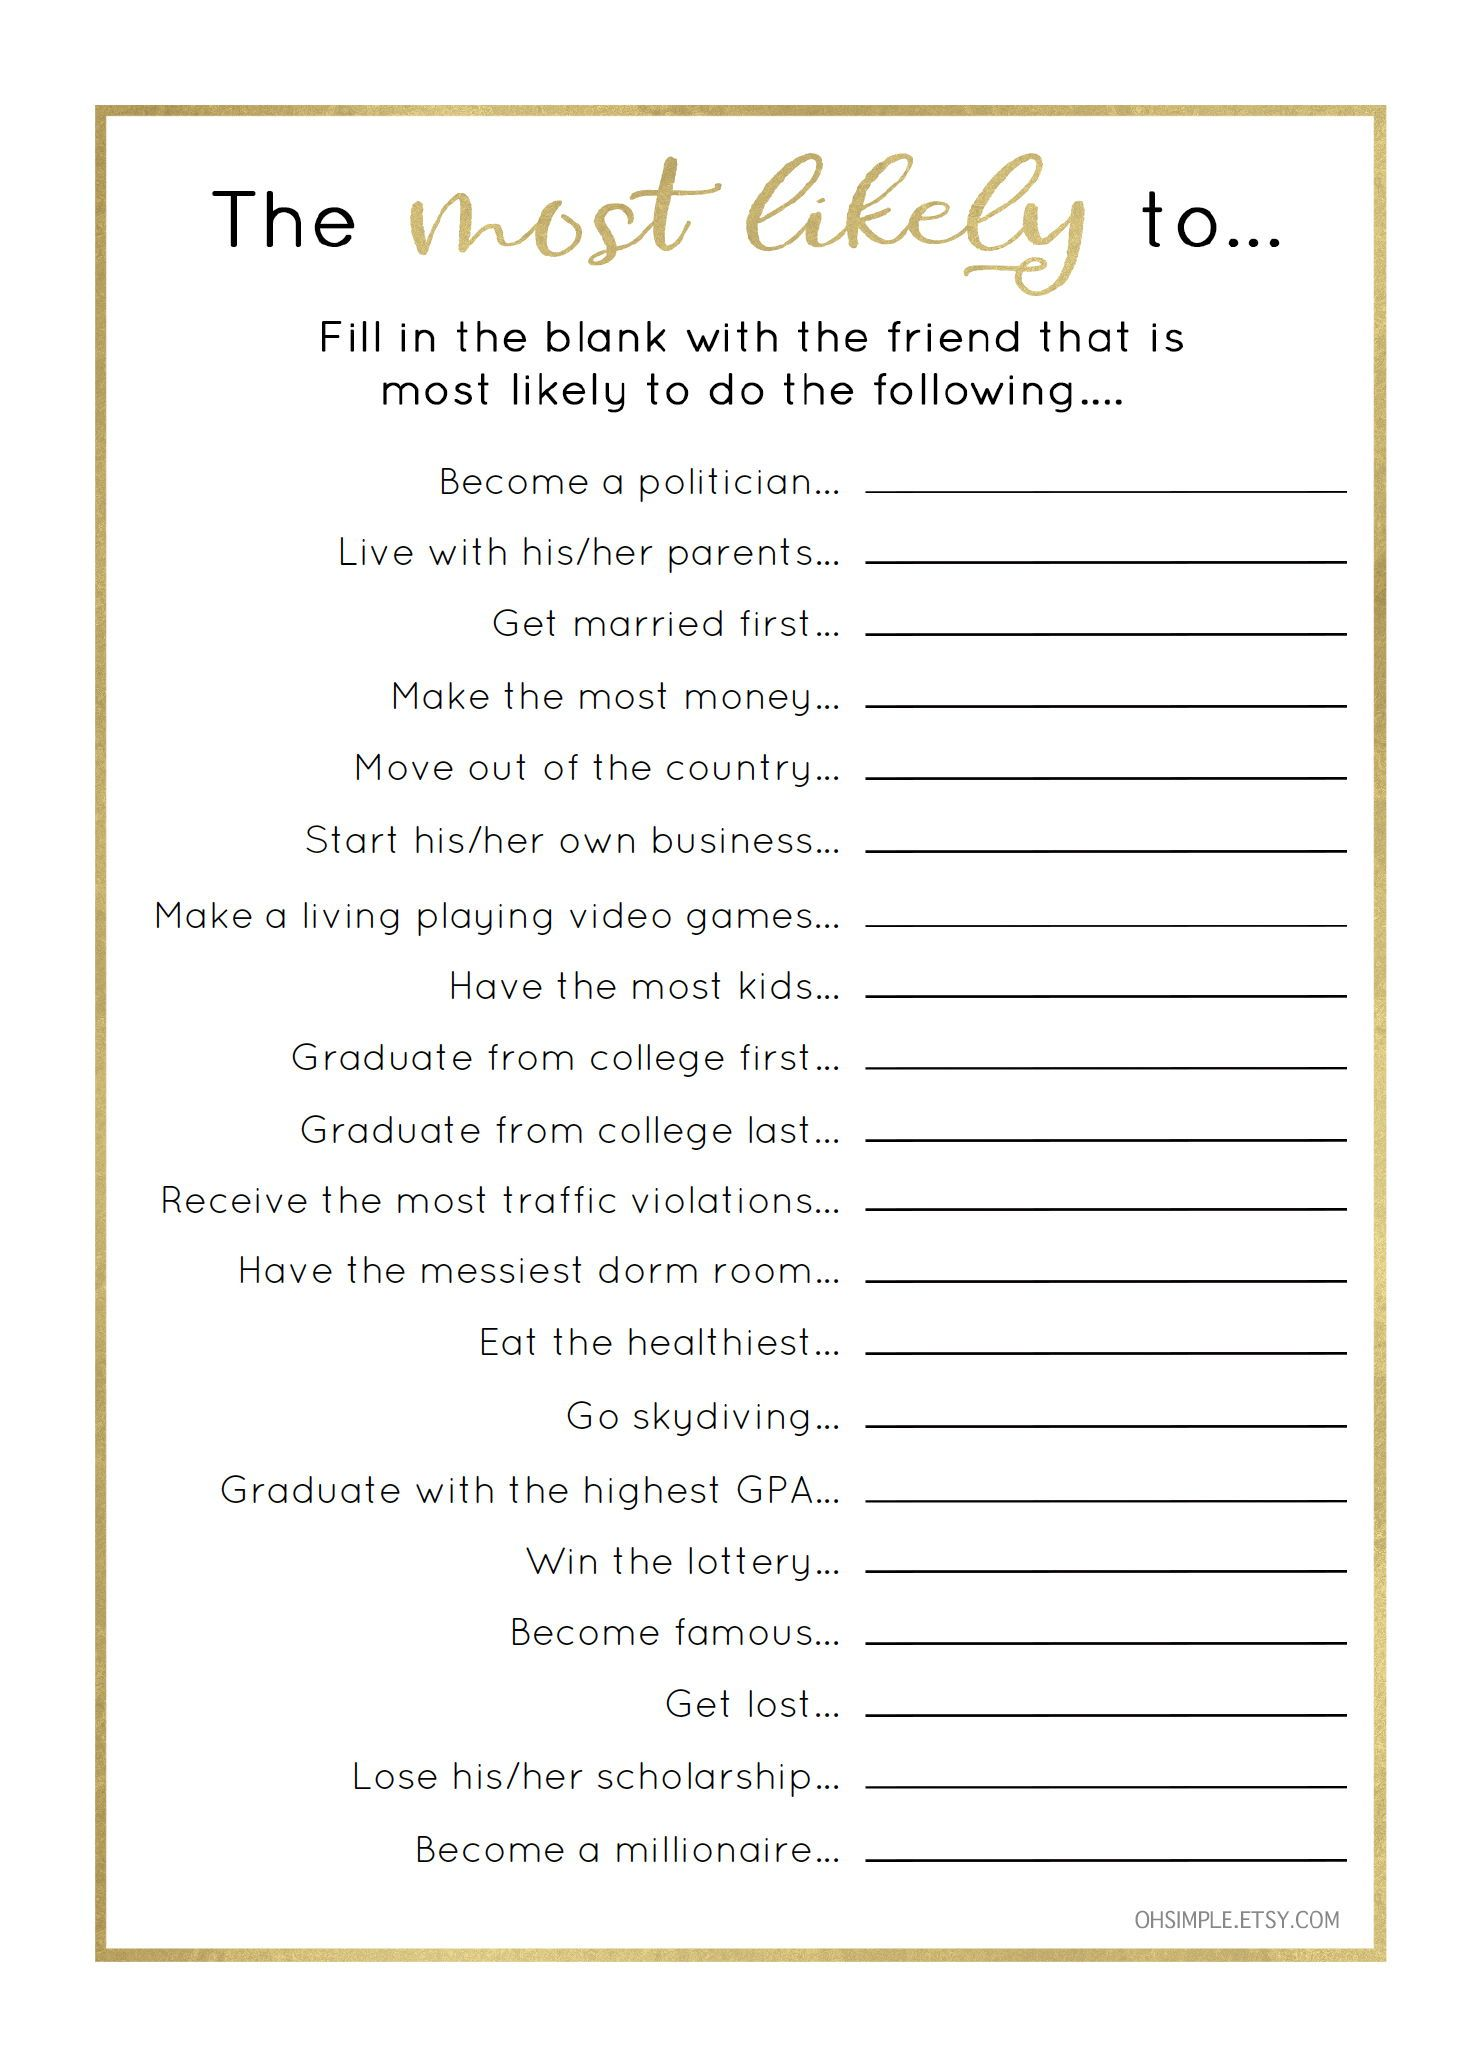 Funny Graduation Party Games Most Likely To Graduation Party Game Easy Graduation Party Ideas Graduation Party Games Graduation Funny Graduation Party Diy